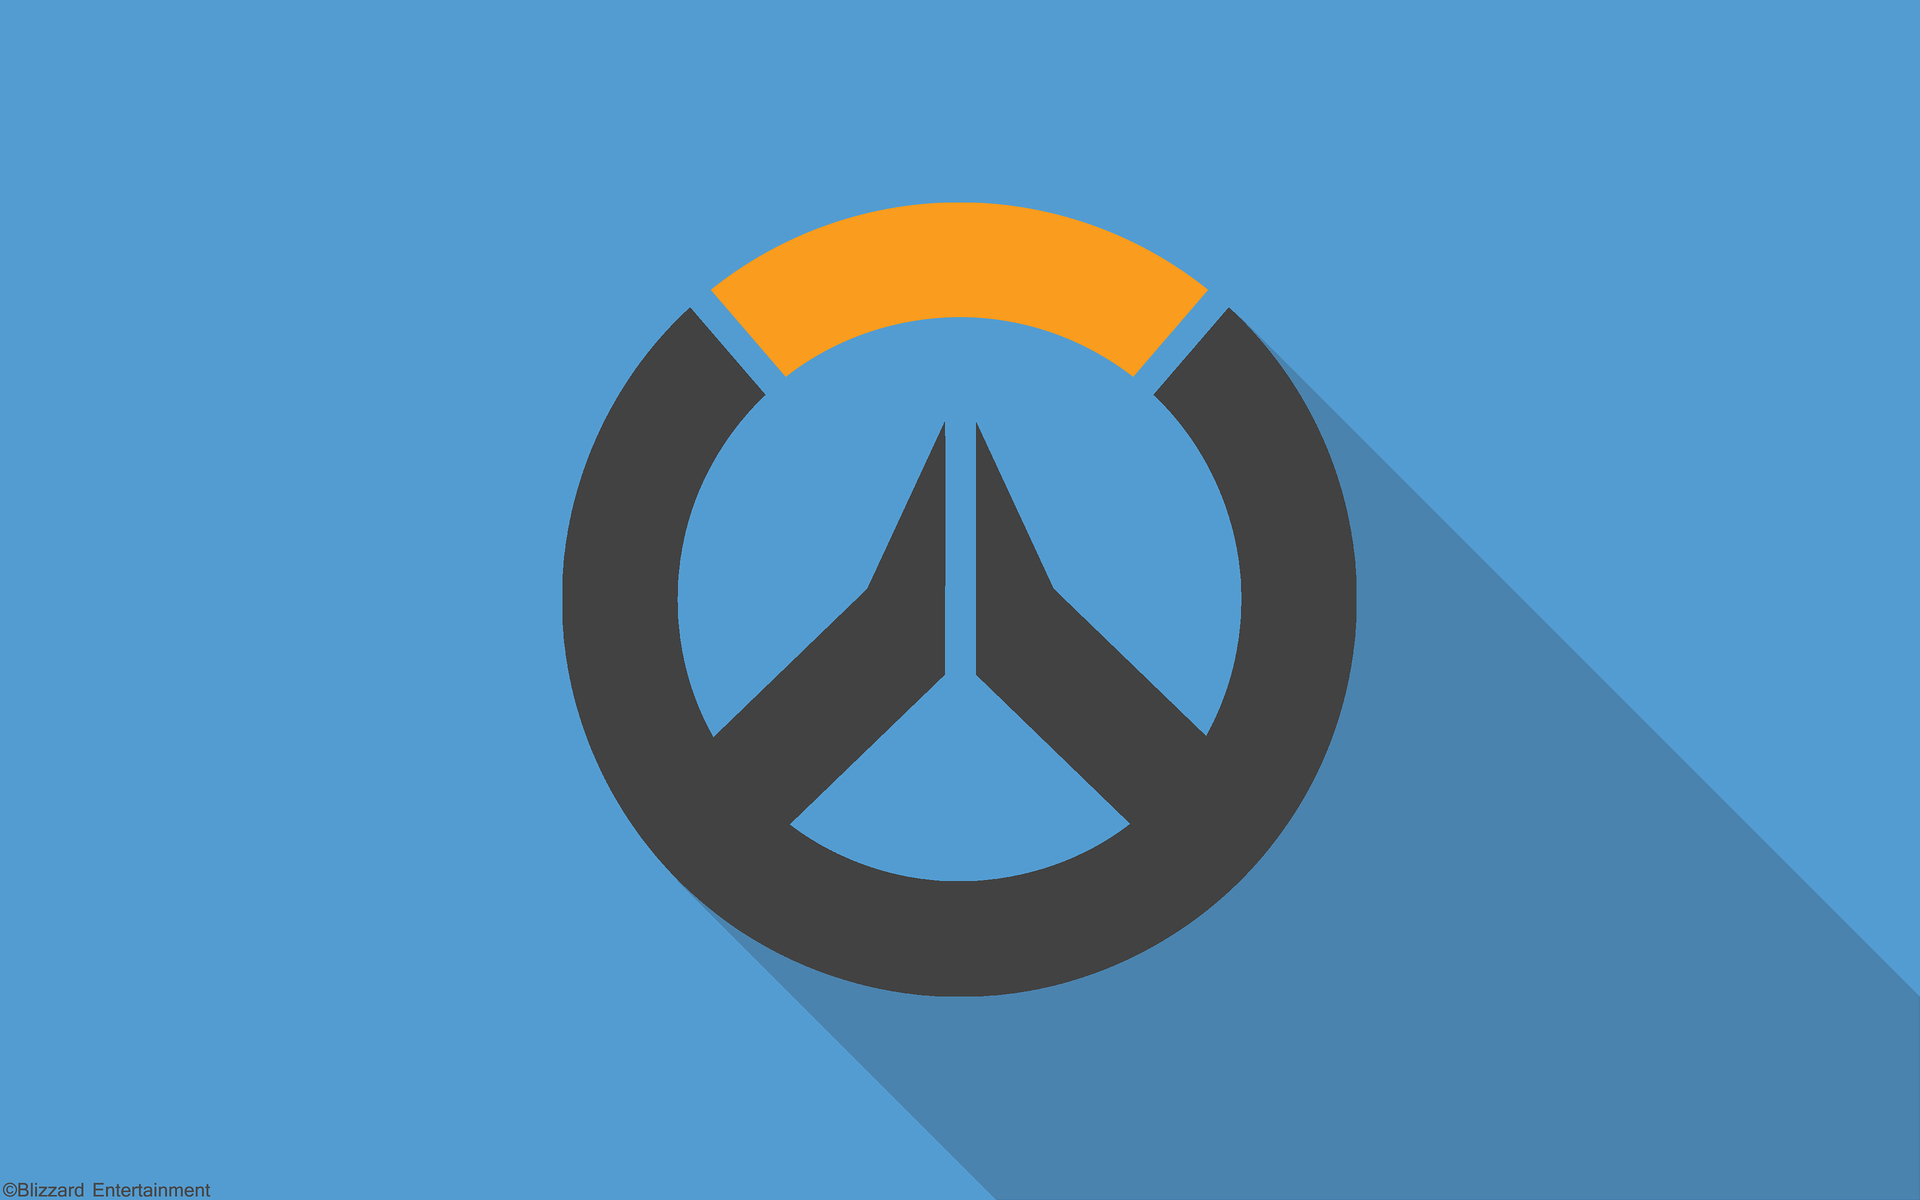 1920x1200 overwatch material design logo 1080p resolution for Material design wallpaper 4k